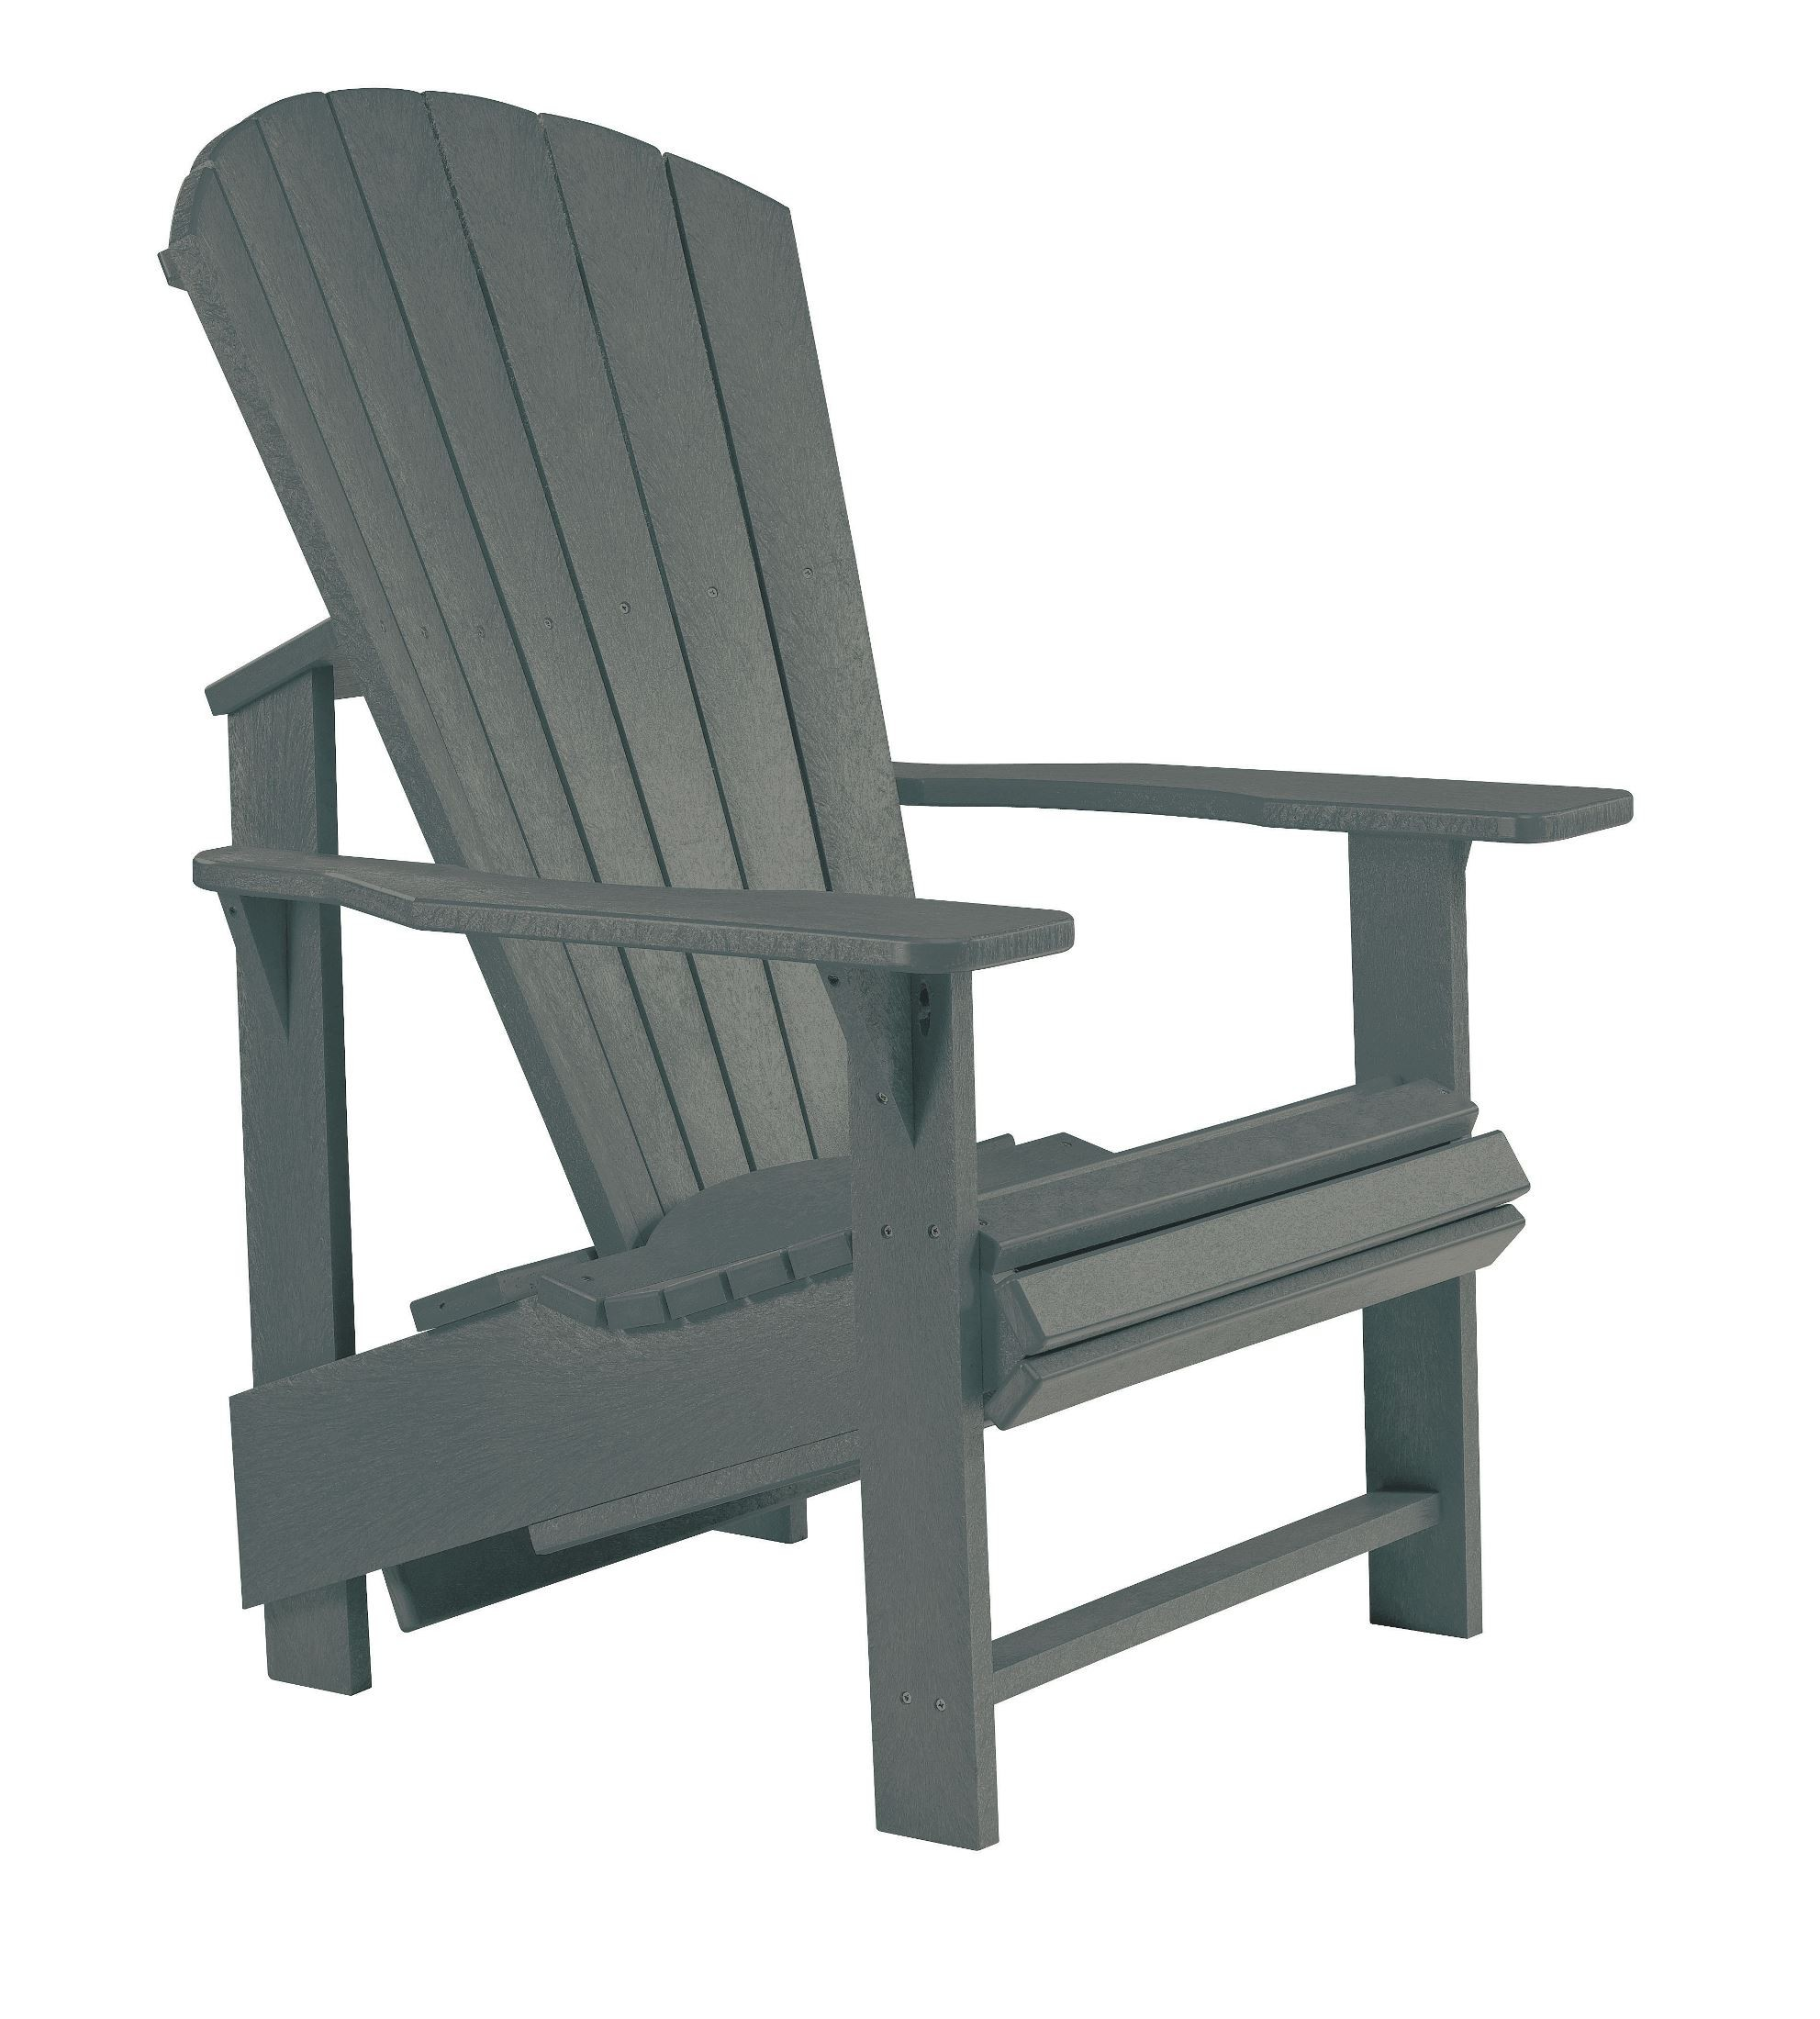 Generations Slate Upright Adirondack Chair From Cr Plastic C03 18 Coleman Furniture